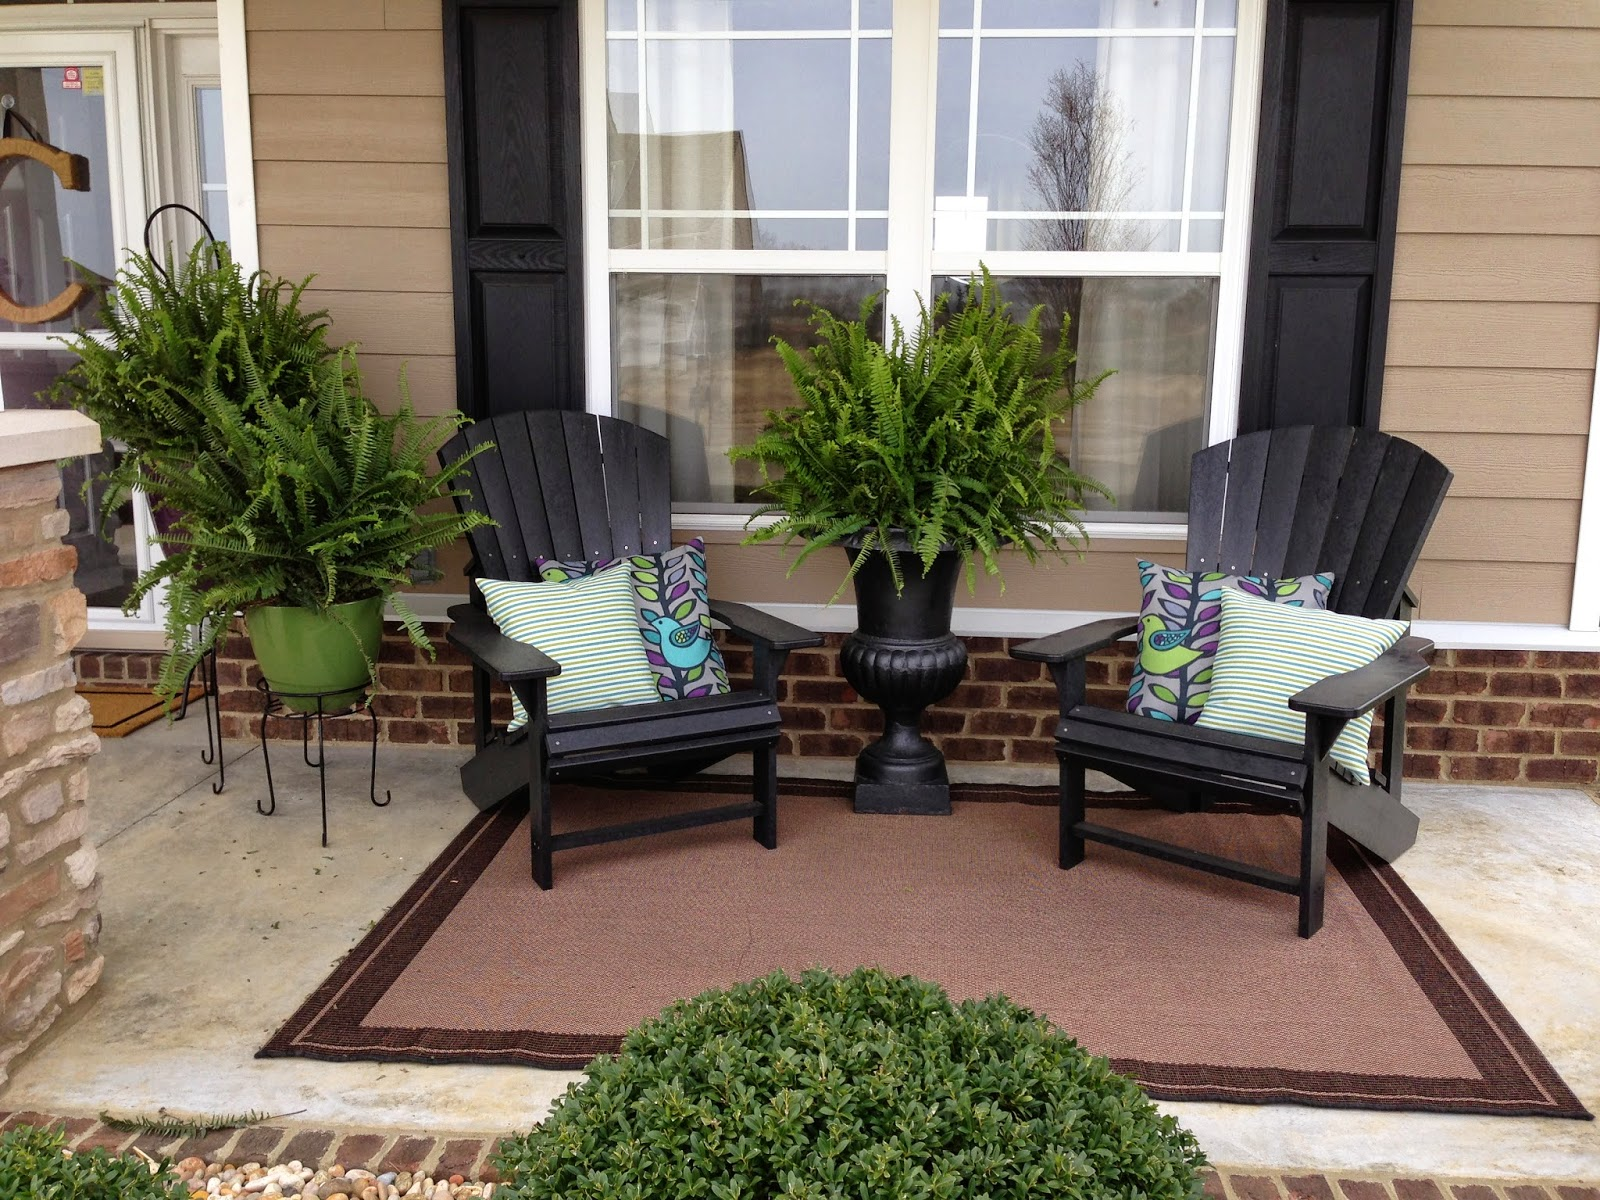 7 front porch decorating ideas pictures for your home for Patio deck decorating ideas